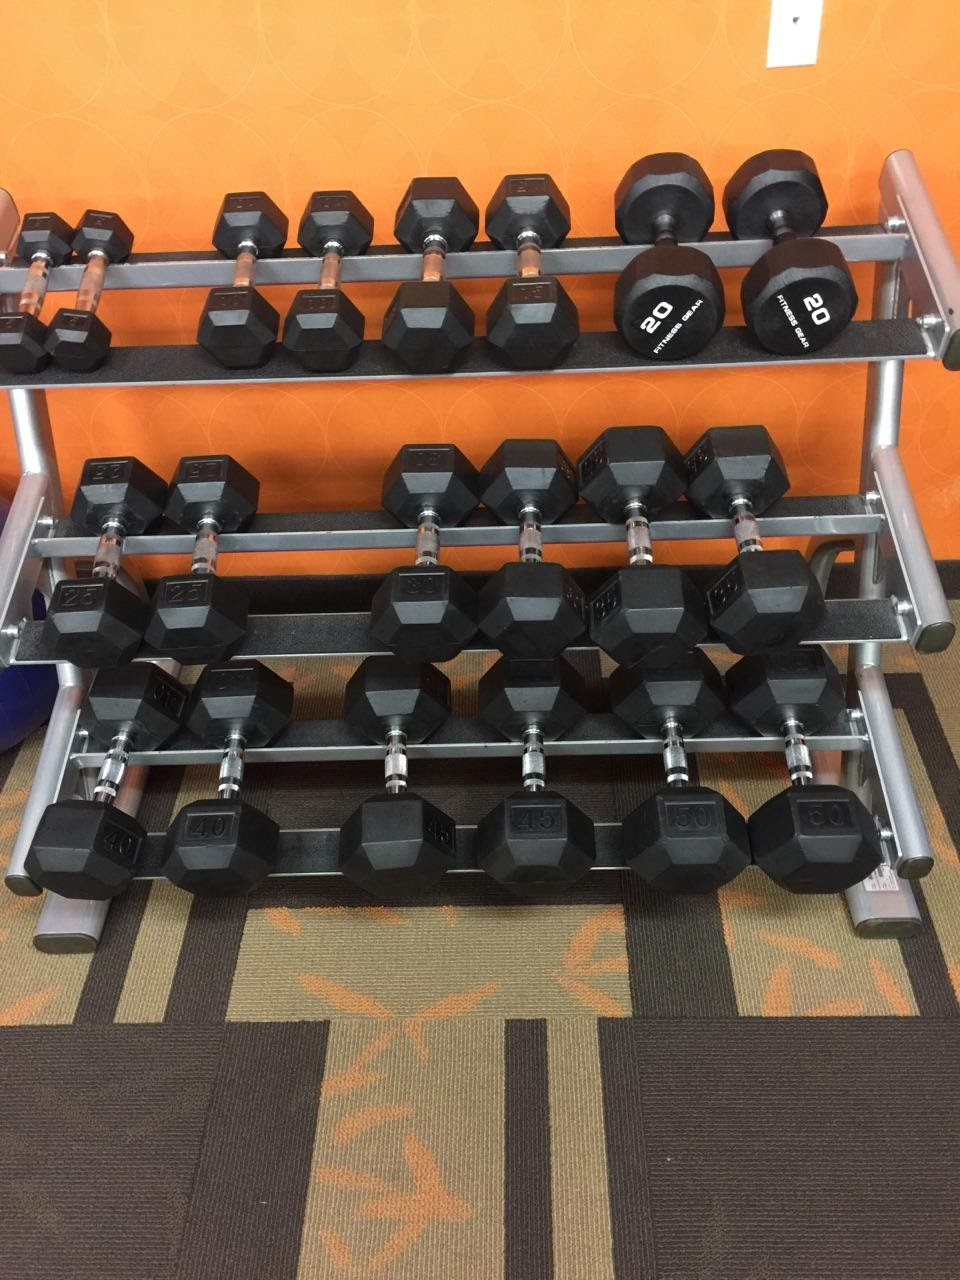 Hotel Gym Workout Leg Day Dumbells